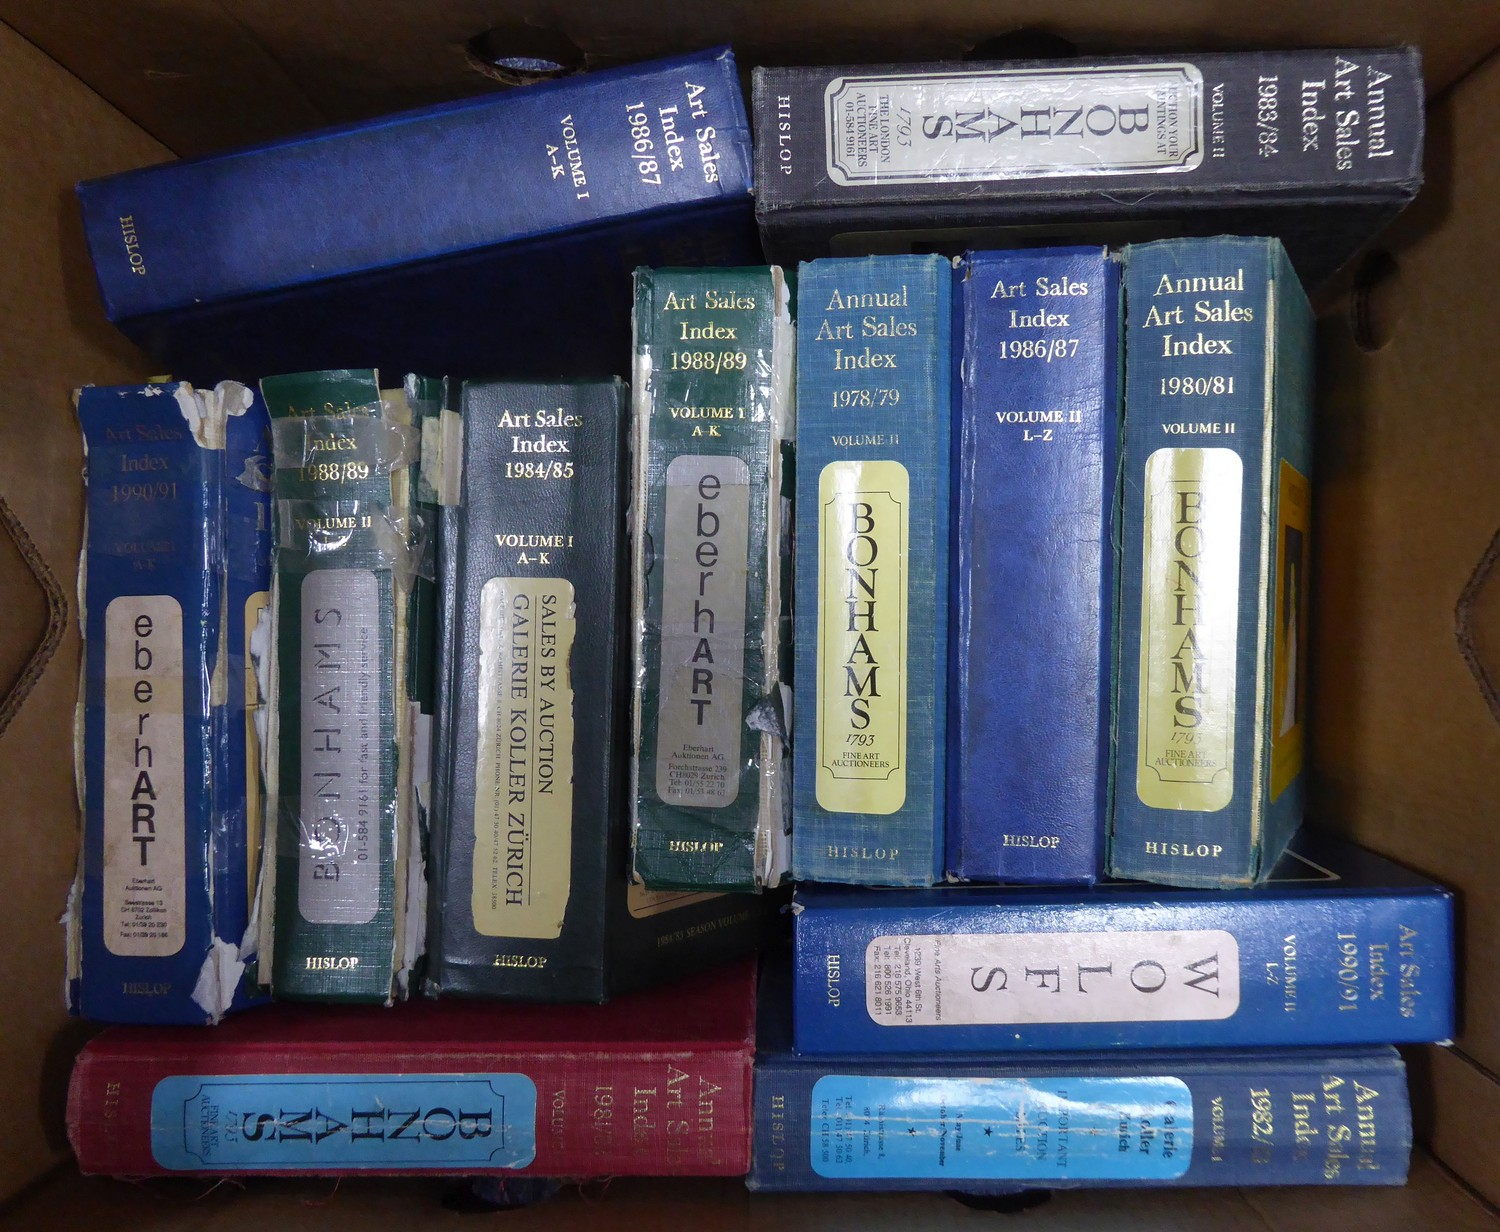 A large quantity of Annual Art Sales Index volumes, ranging from 1980s-1990s, pub Hislop, approx